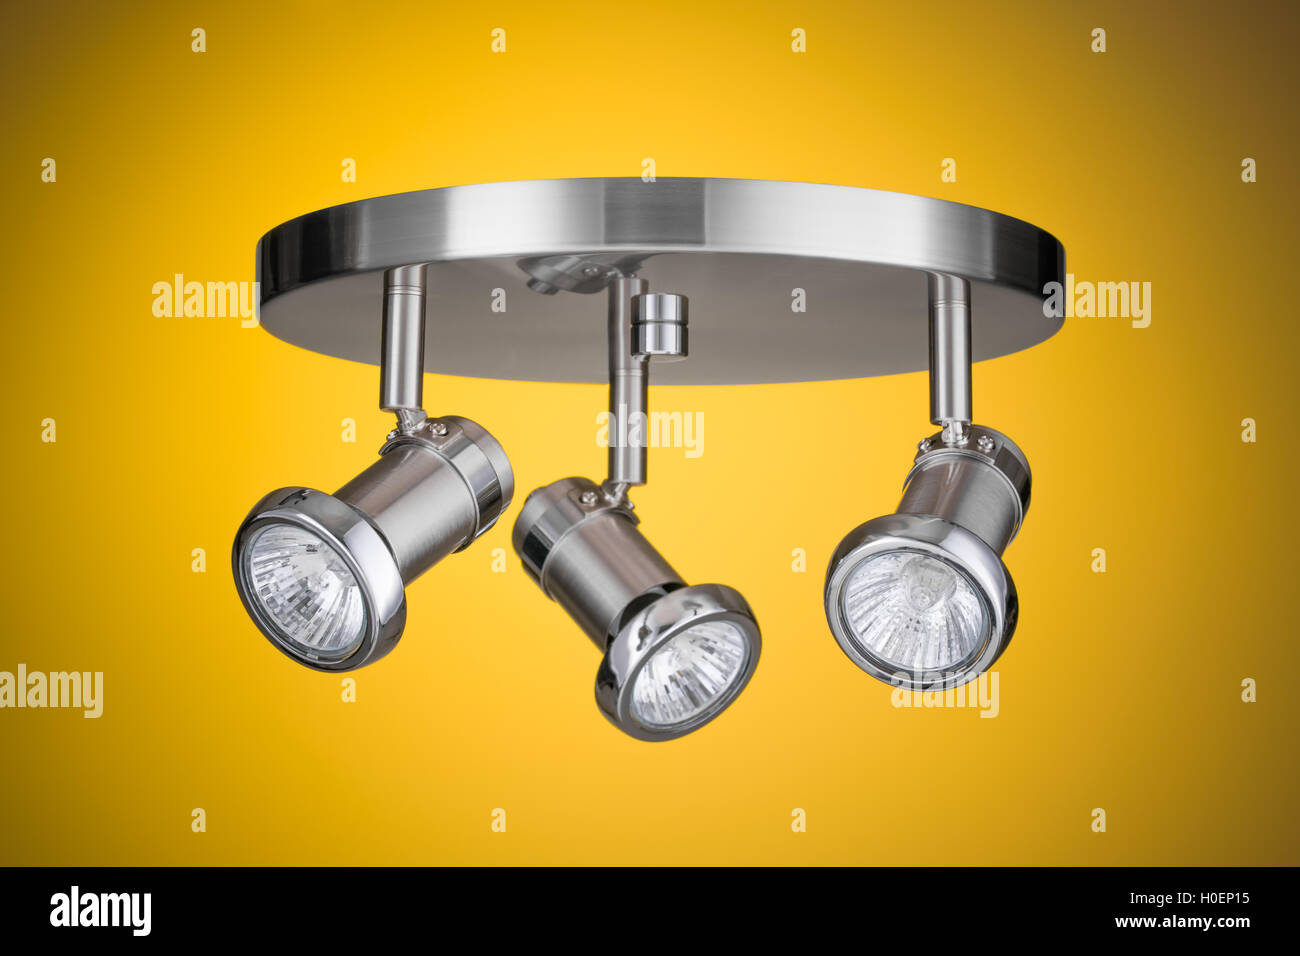 Ceiling light fixture isolated on yellow background - Stock Image